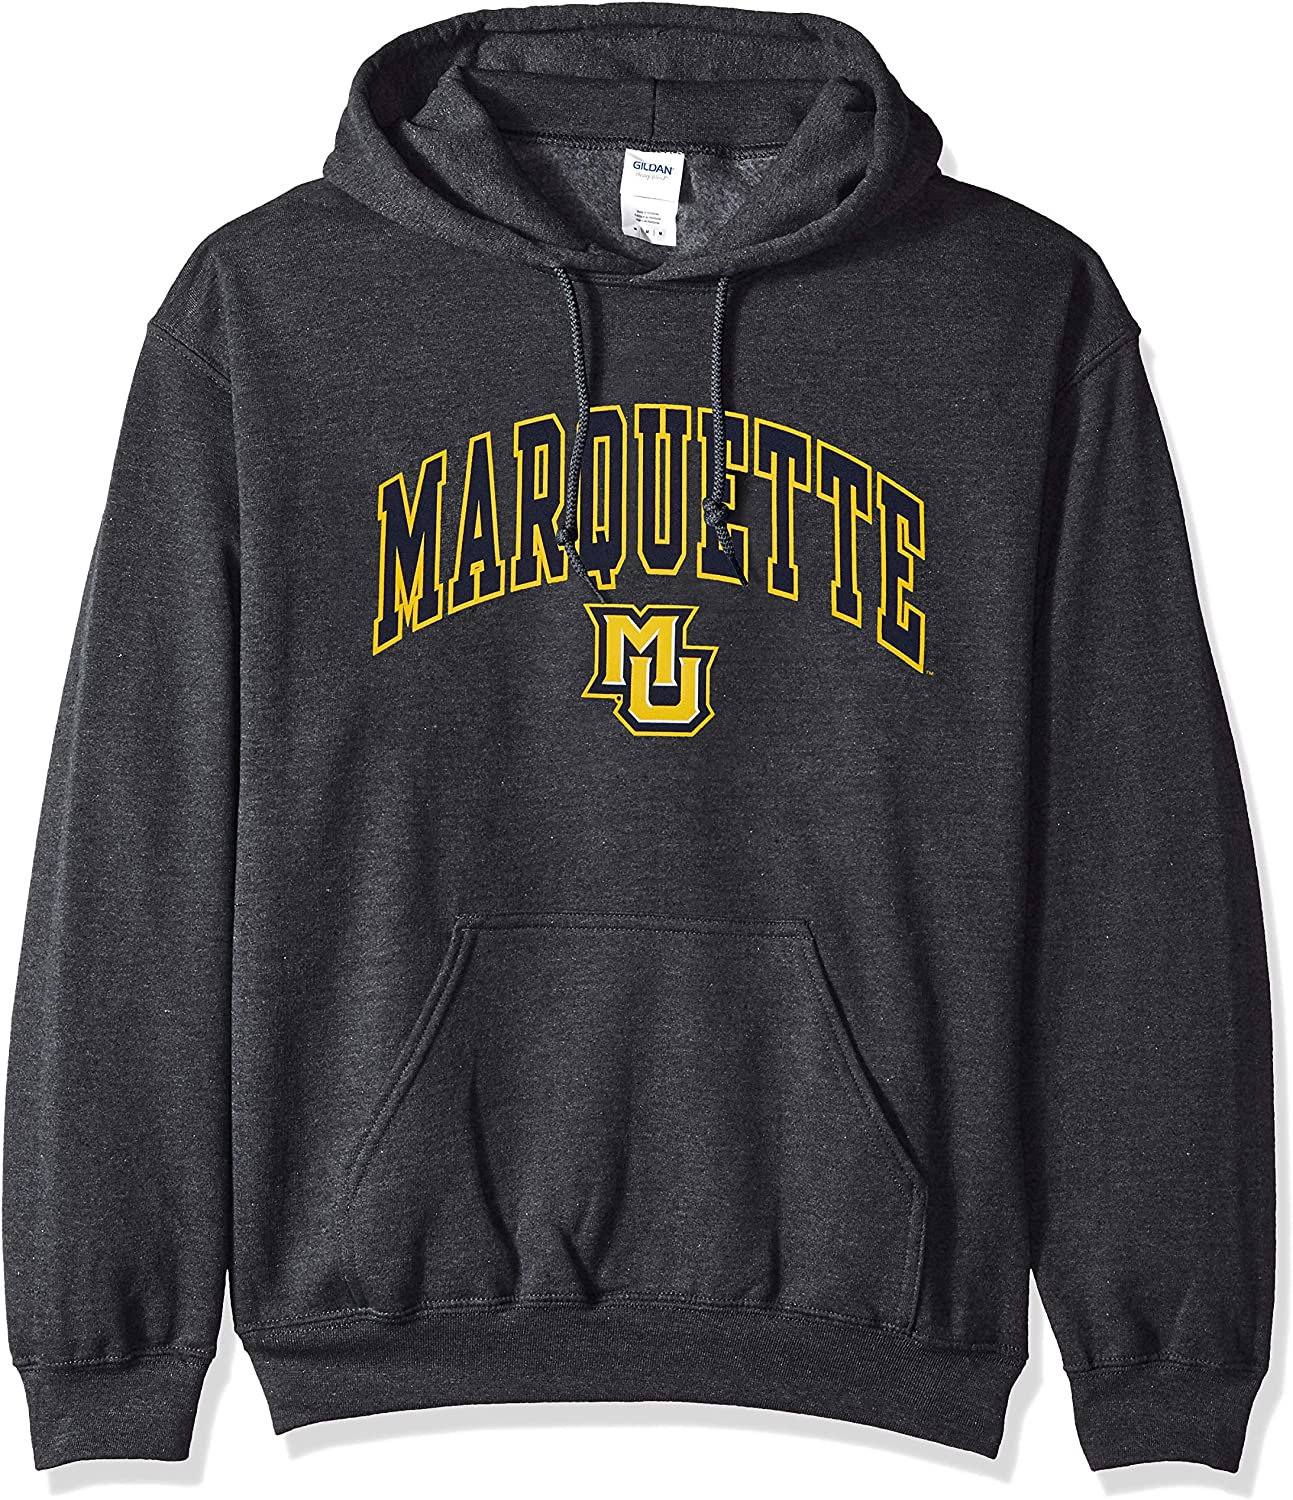 Elite Fan Shop NCAA Hoodie Sweatshirt Dark Heather Arch